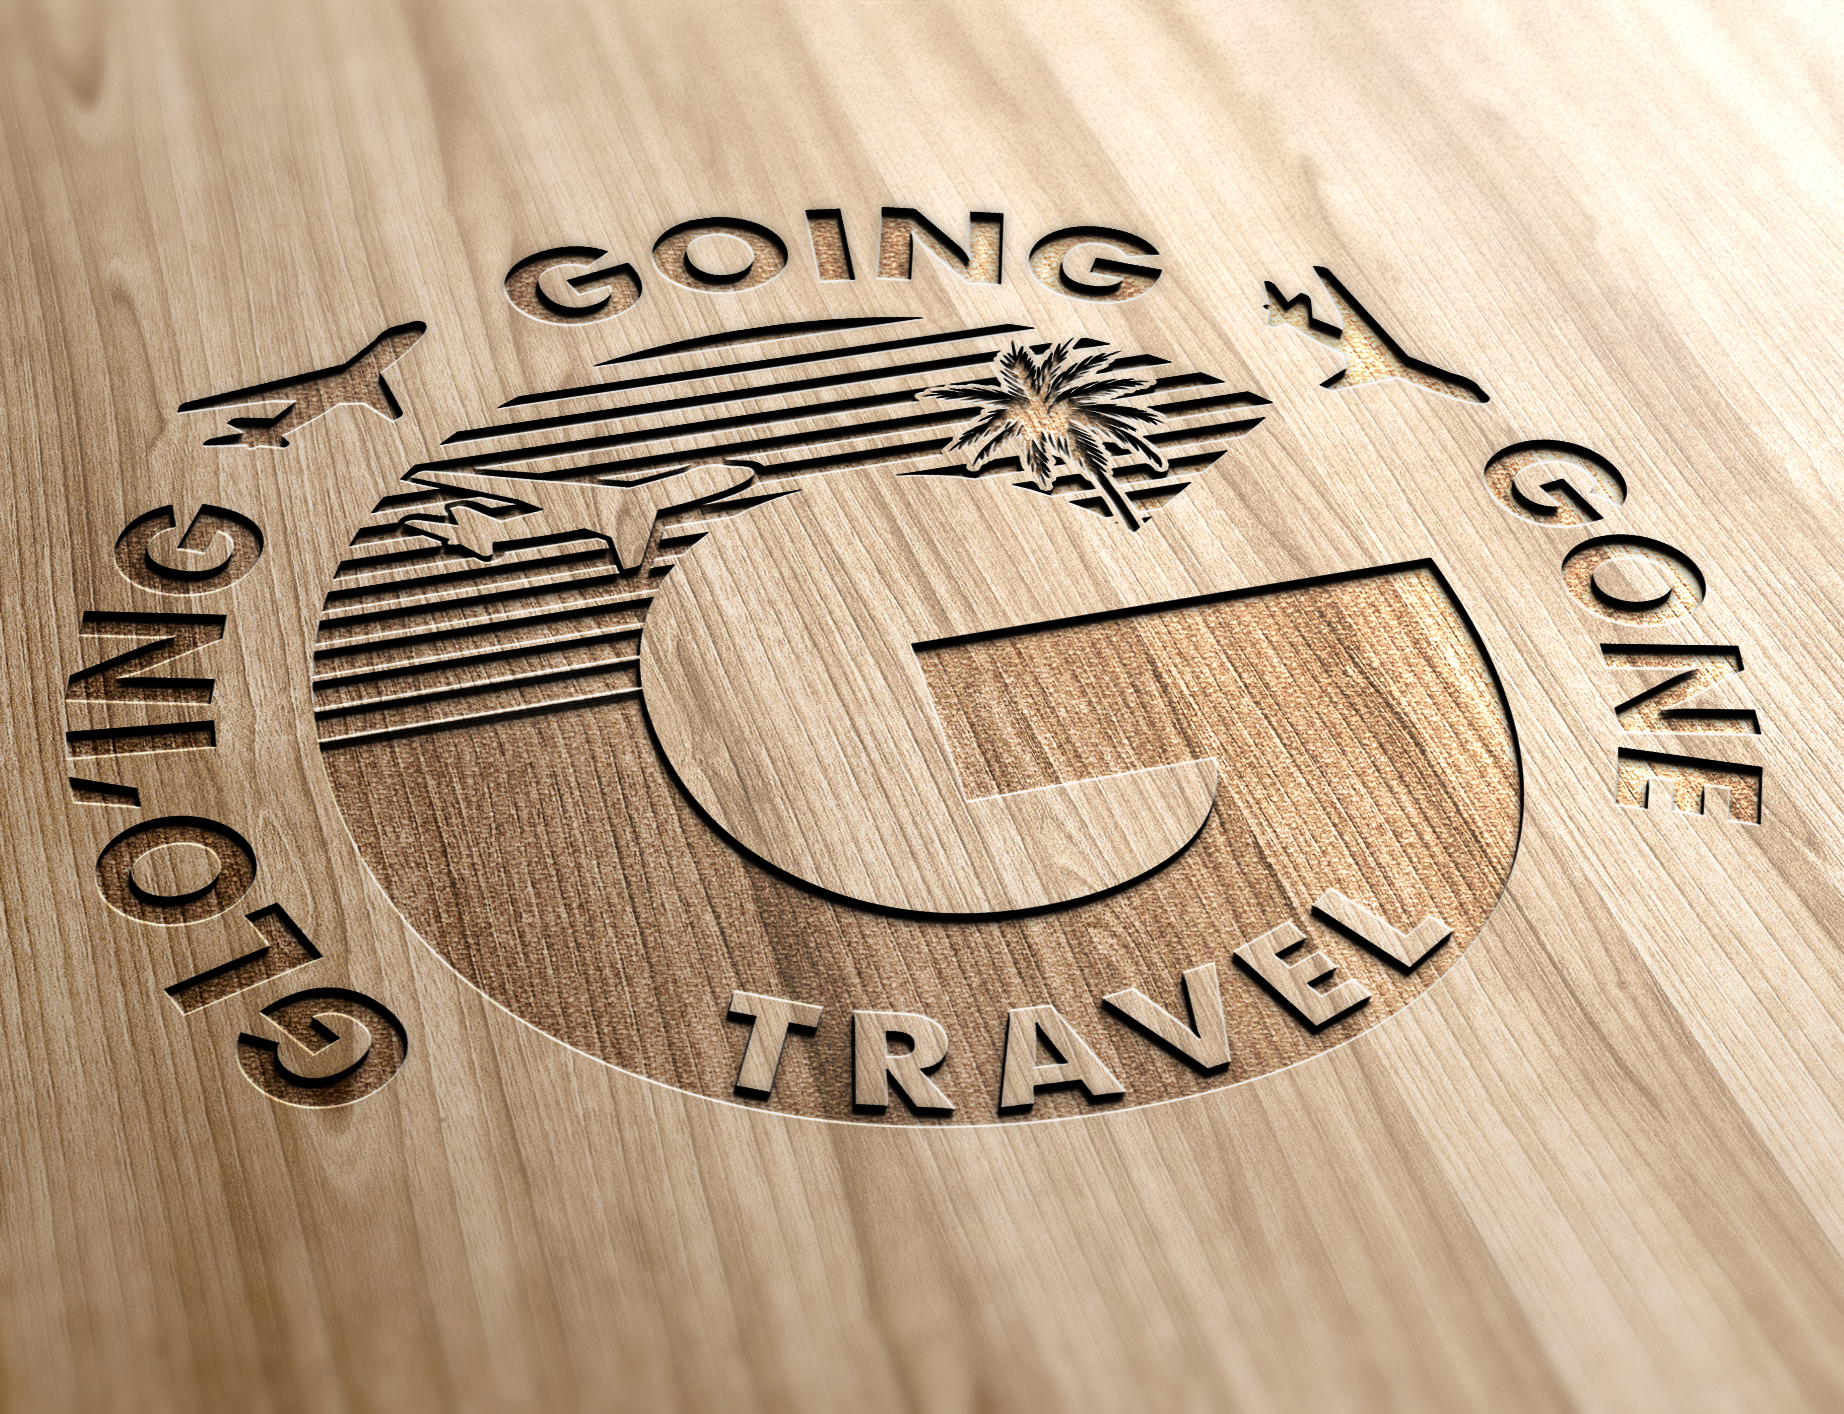 glo'ing going gone travel - wood engraved logo.jpg